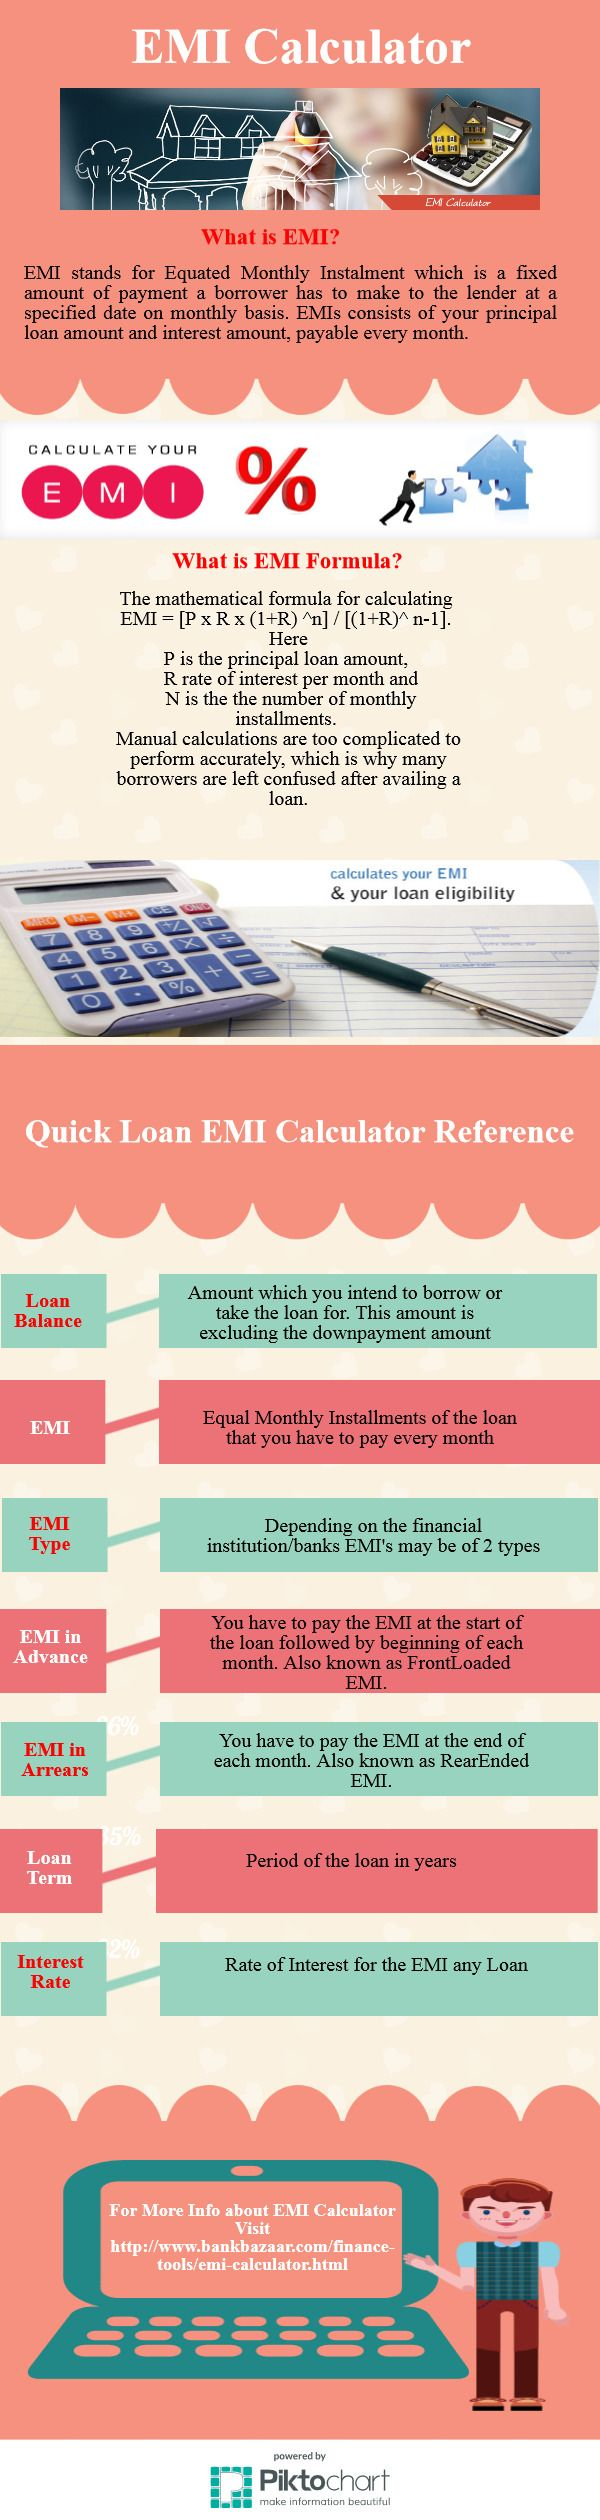 Best Home Loan Emi Calculator Images On   Loan